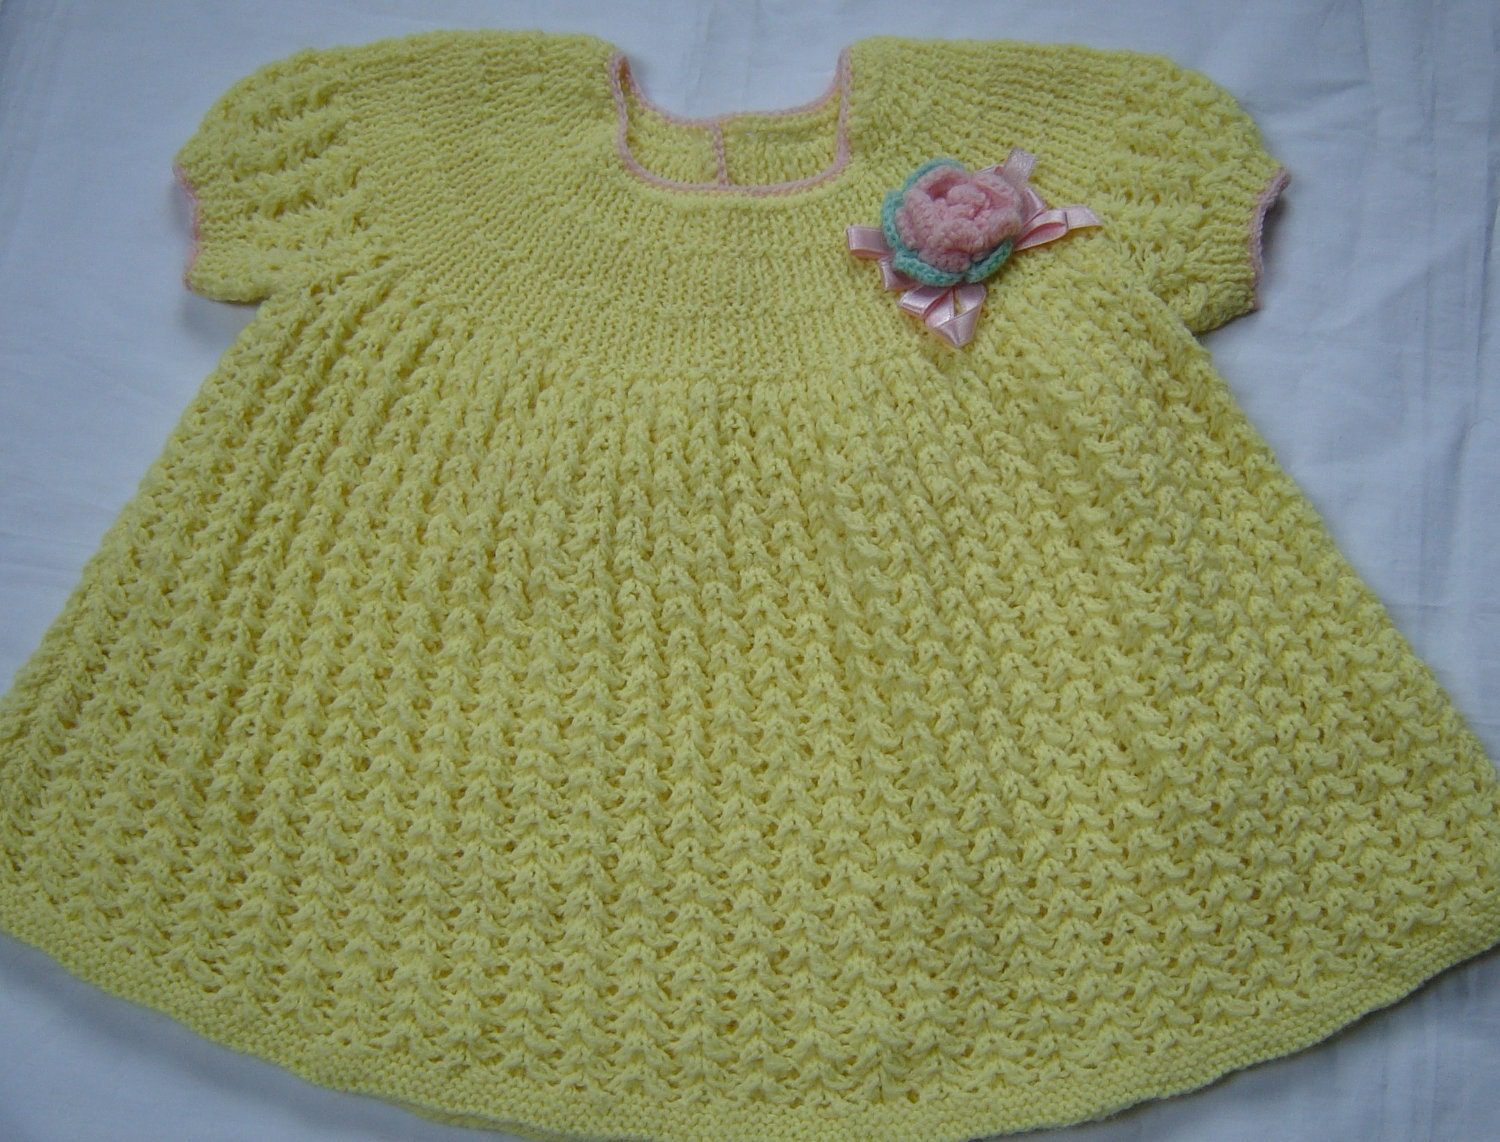 Hand Knitted Dress Patterns : Hand Knit Crochet Baby Girl Dress Vintage Style by SwanAvenue